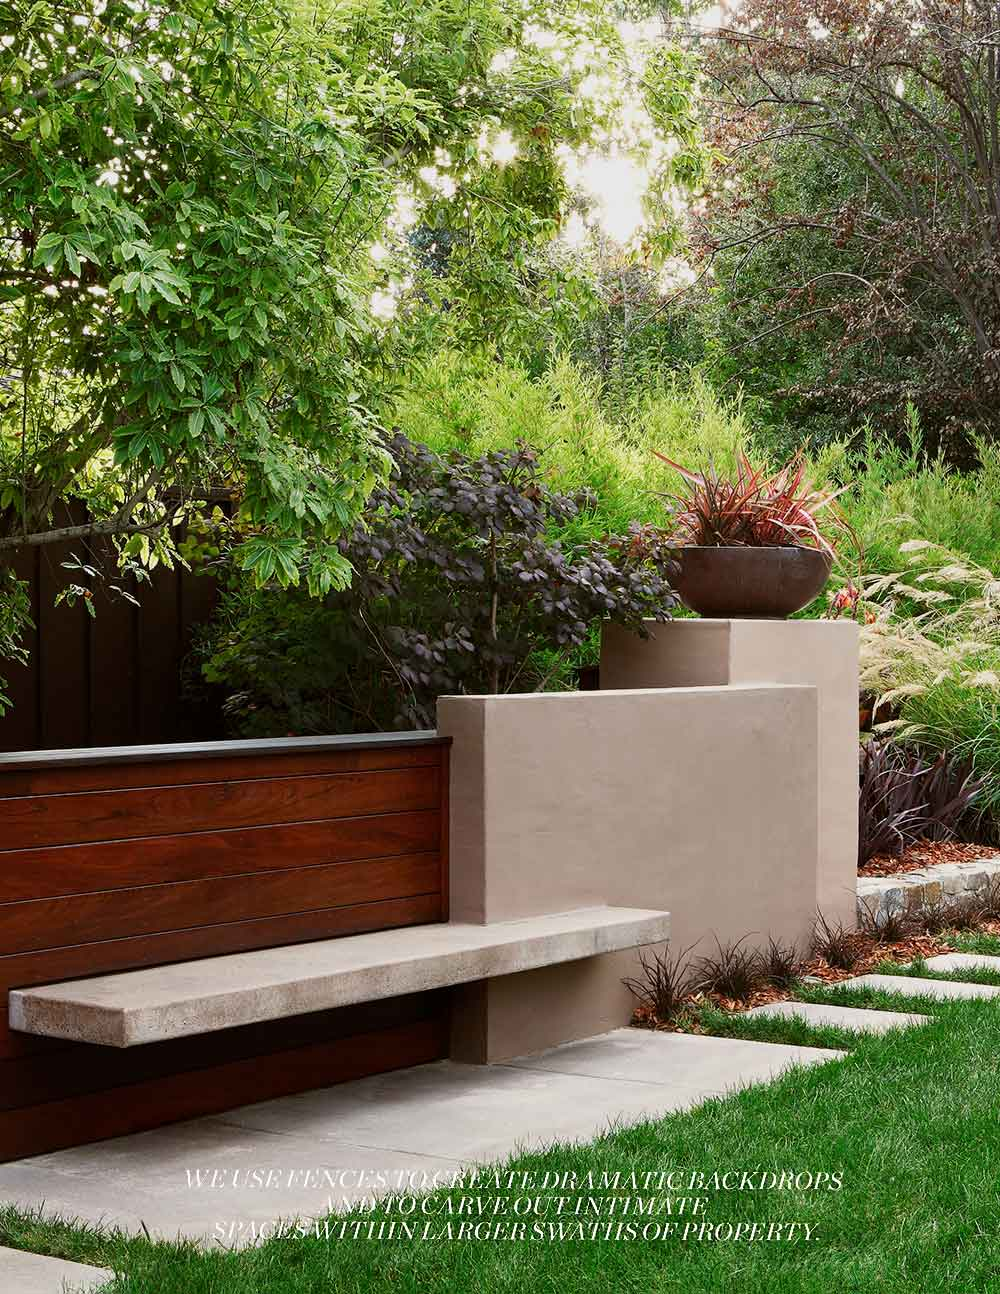 Garden Design features the bench as sculpture from Arterra's project The Garden as Sculpture.